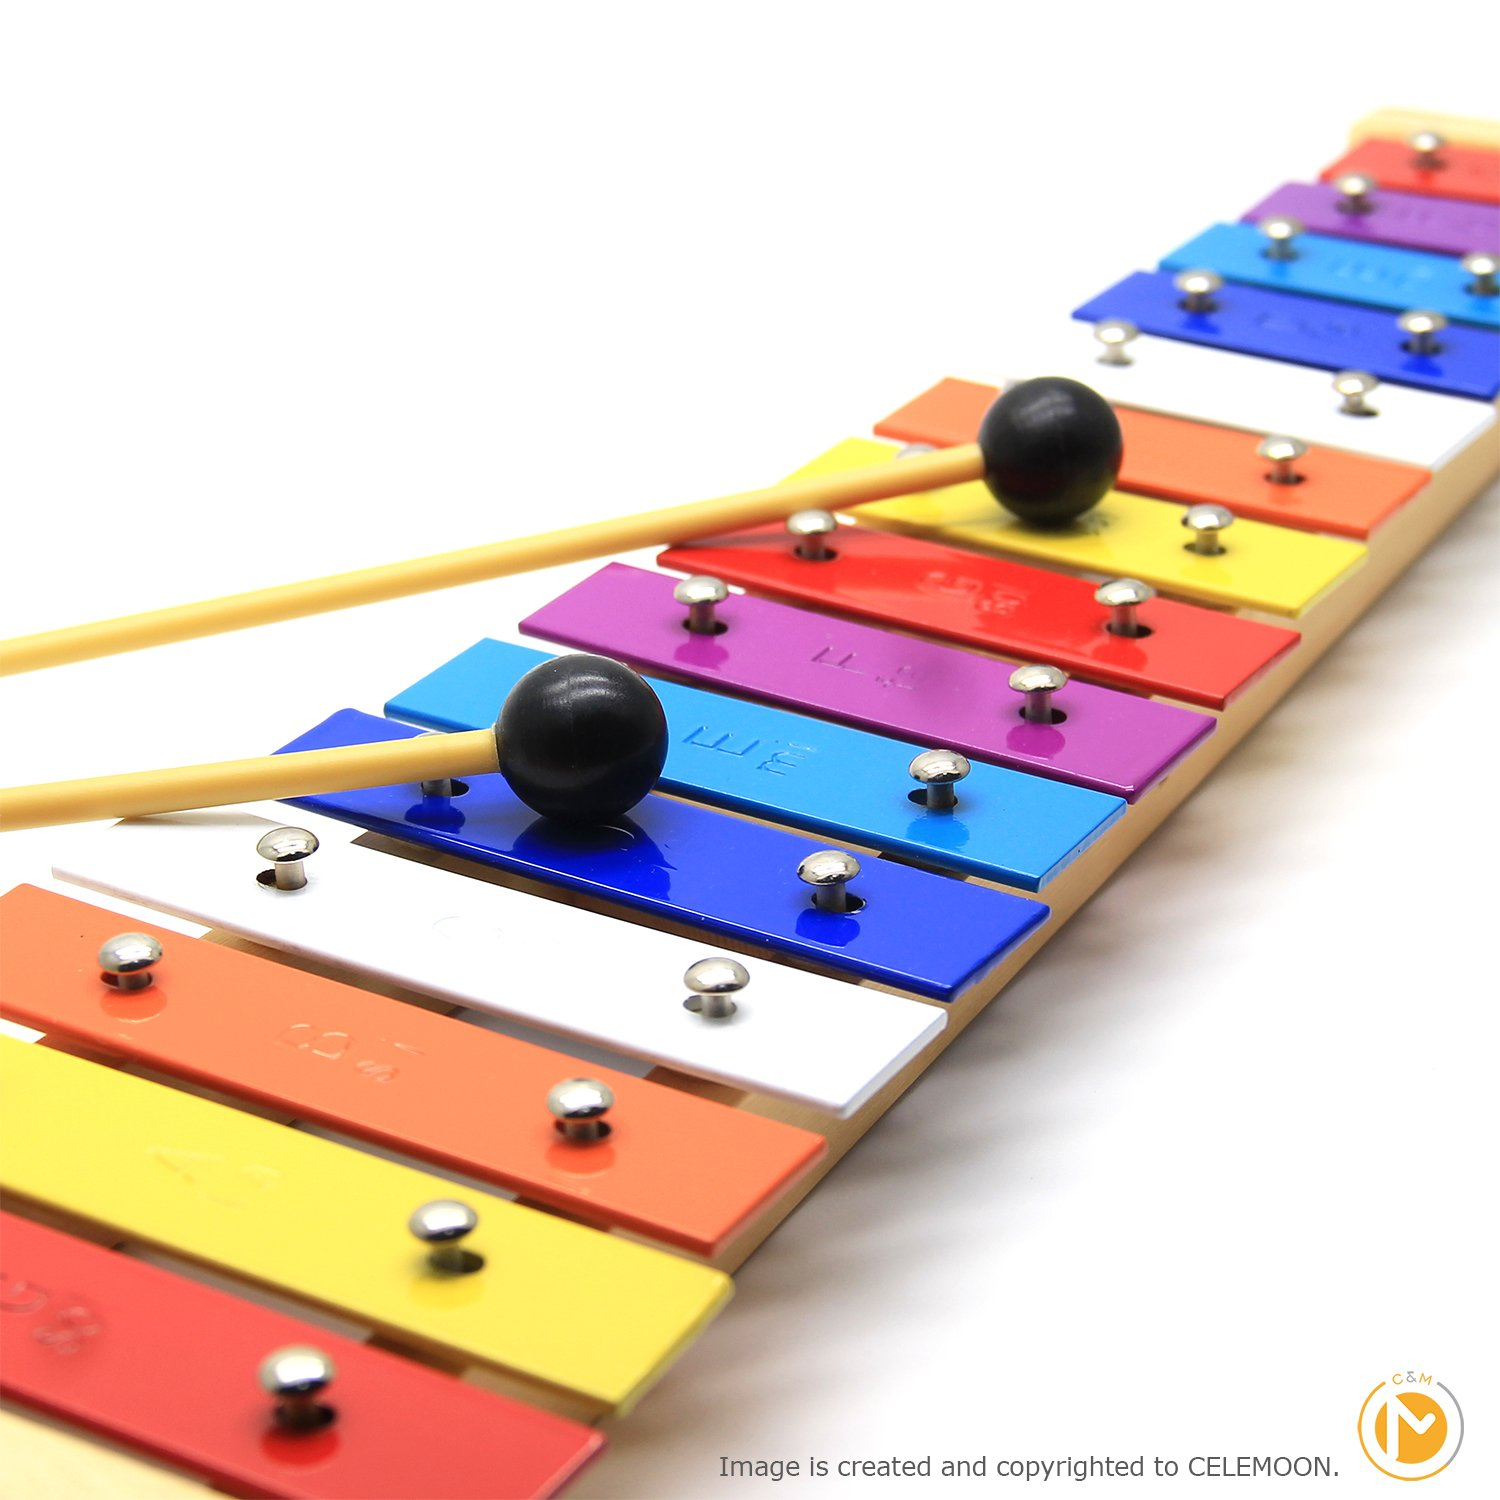 CELEMOON Natural Wooden Toddler Xylophone Glockenspiel For Kids with Multi-Colored Metal Bars Included Two Sets of Child-Safe Wooden Mallets (15-tone) by CELEMOON (Image #4)